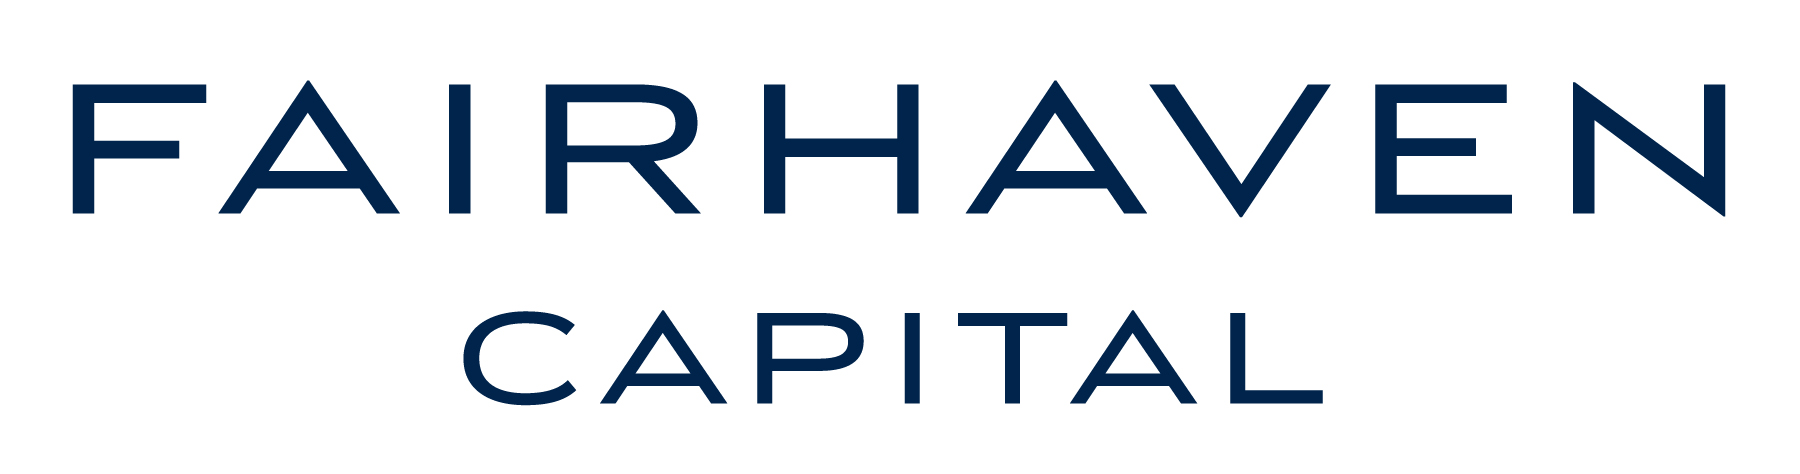 fairhaven capital logo.jpg